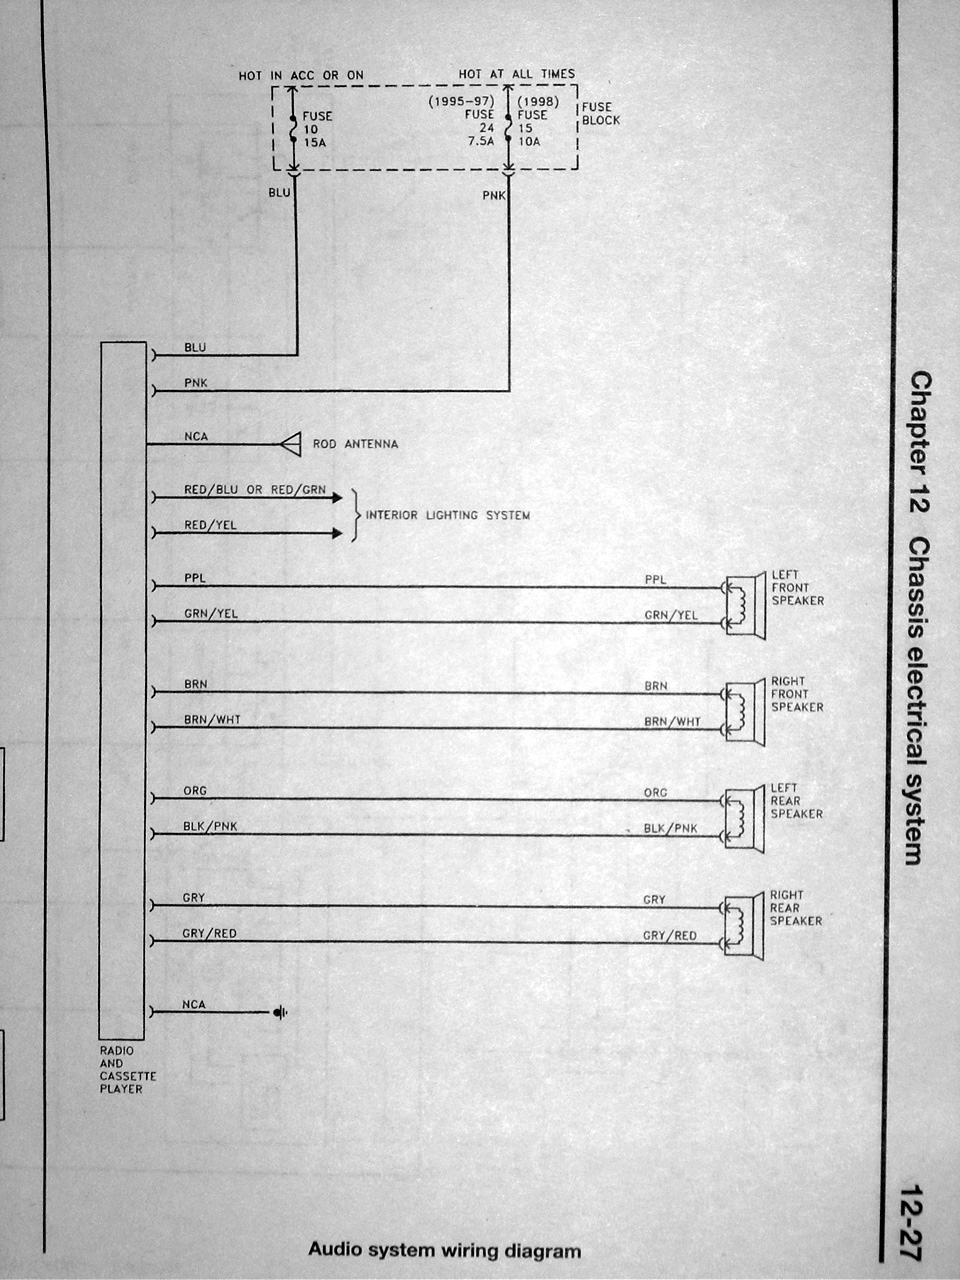 DSC01849 wiring diagram thread *useful info* nissan forum 99 maxima audio wiring diagram at panicattacktreatment.co